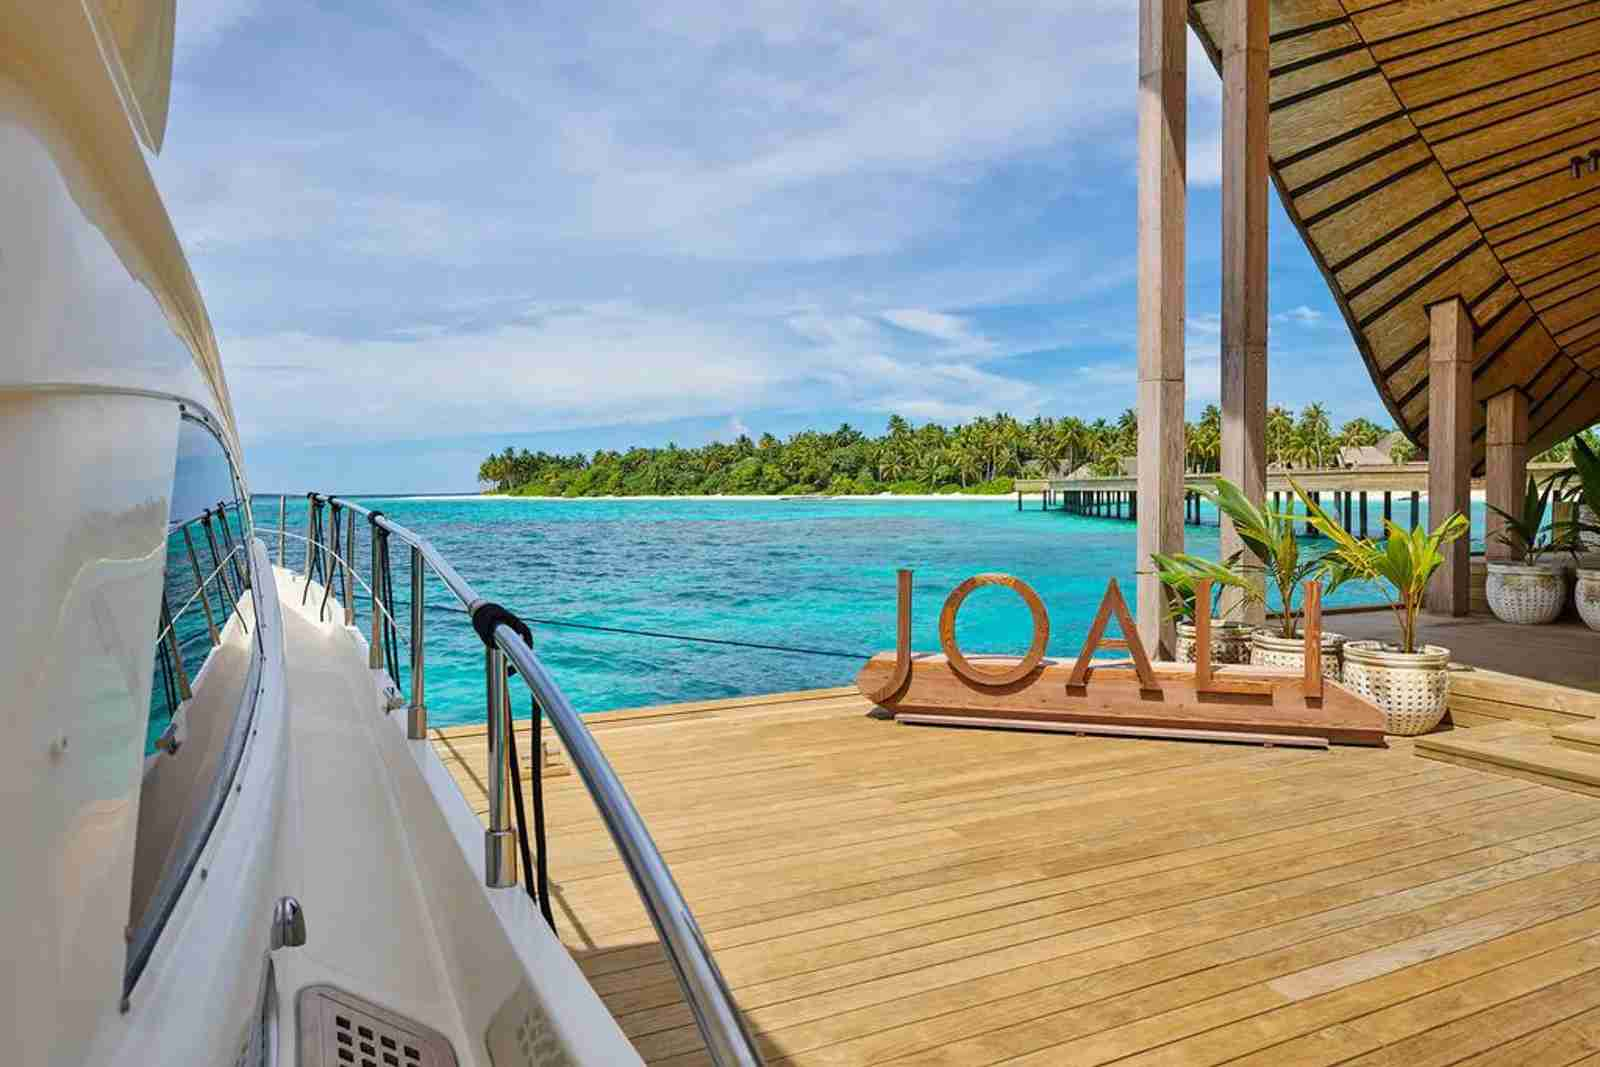 (Photo courtesy of Joali Maldives)